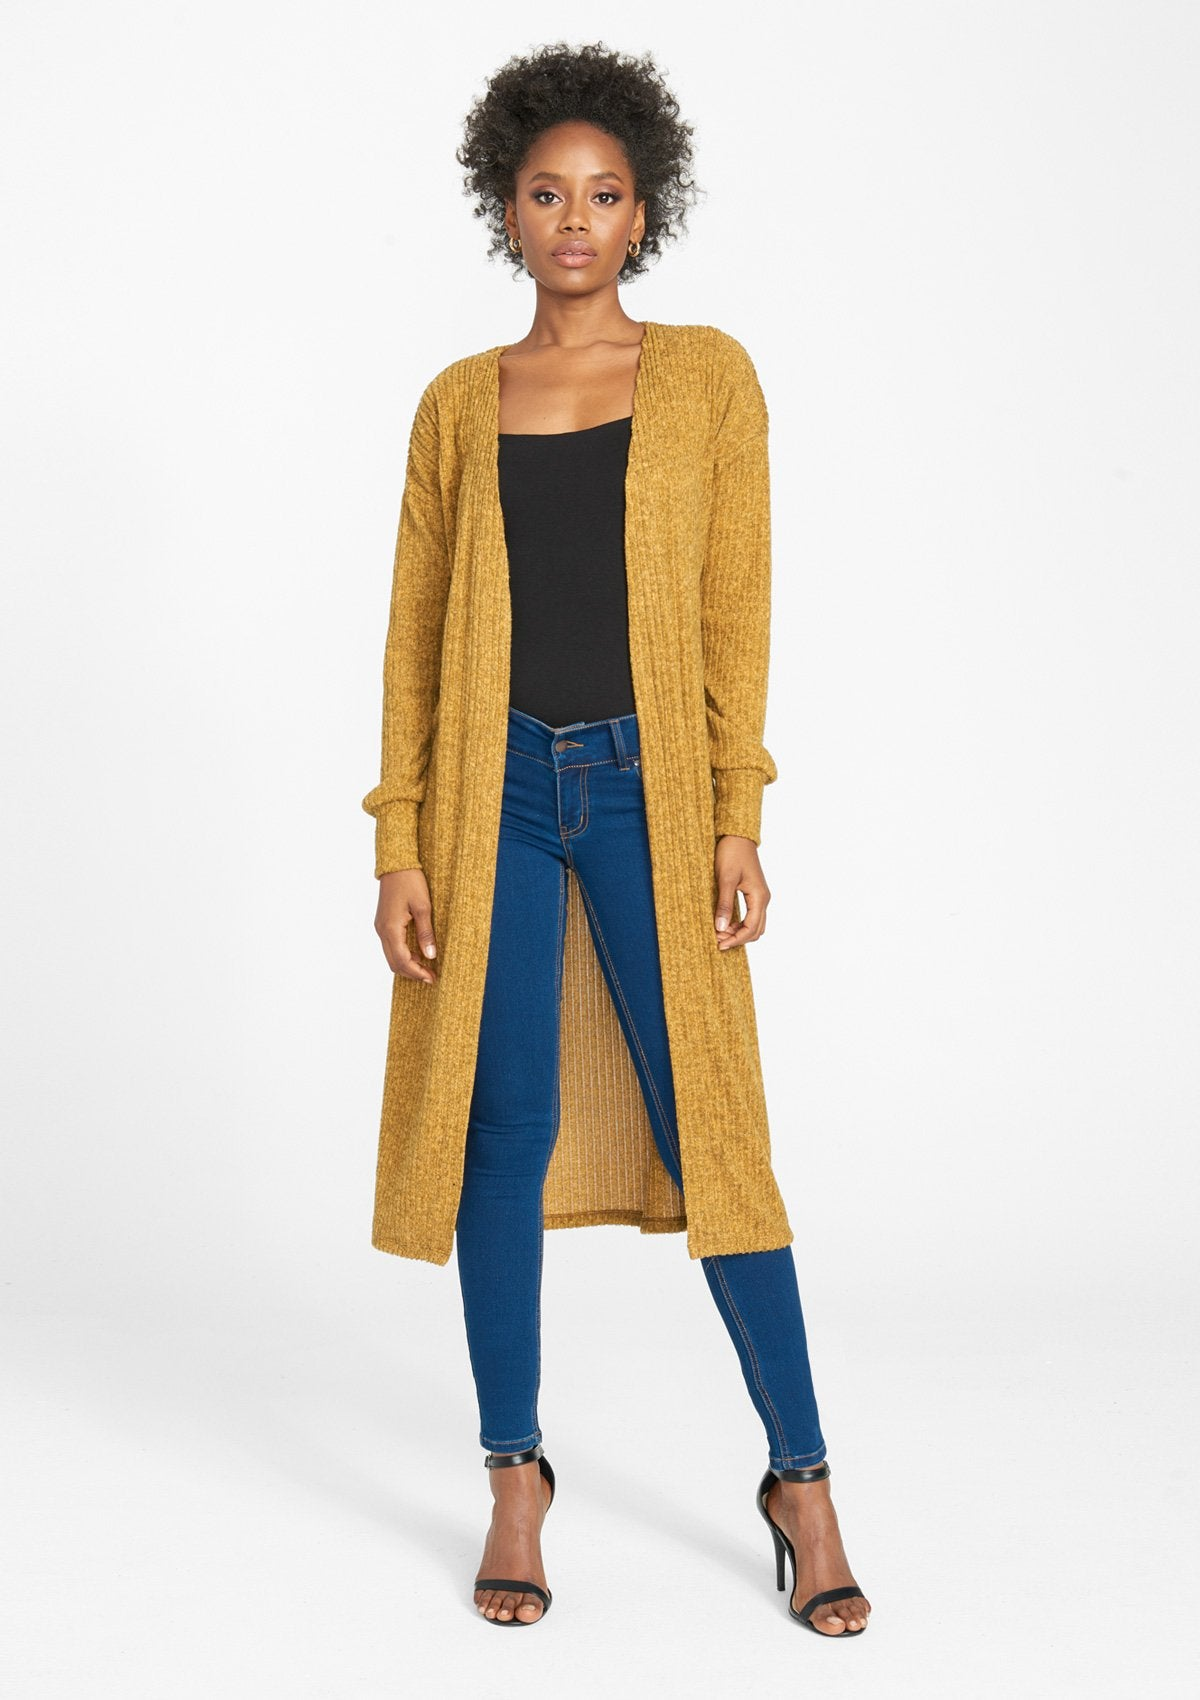 Alloy Apparel Tall Rib Knit Duster for Women in Heather Mustard Size S | Polyester